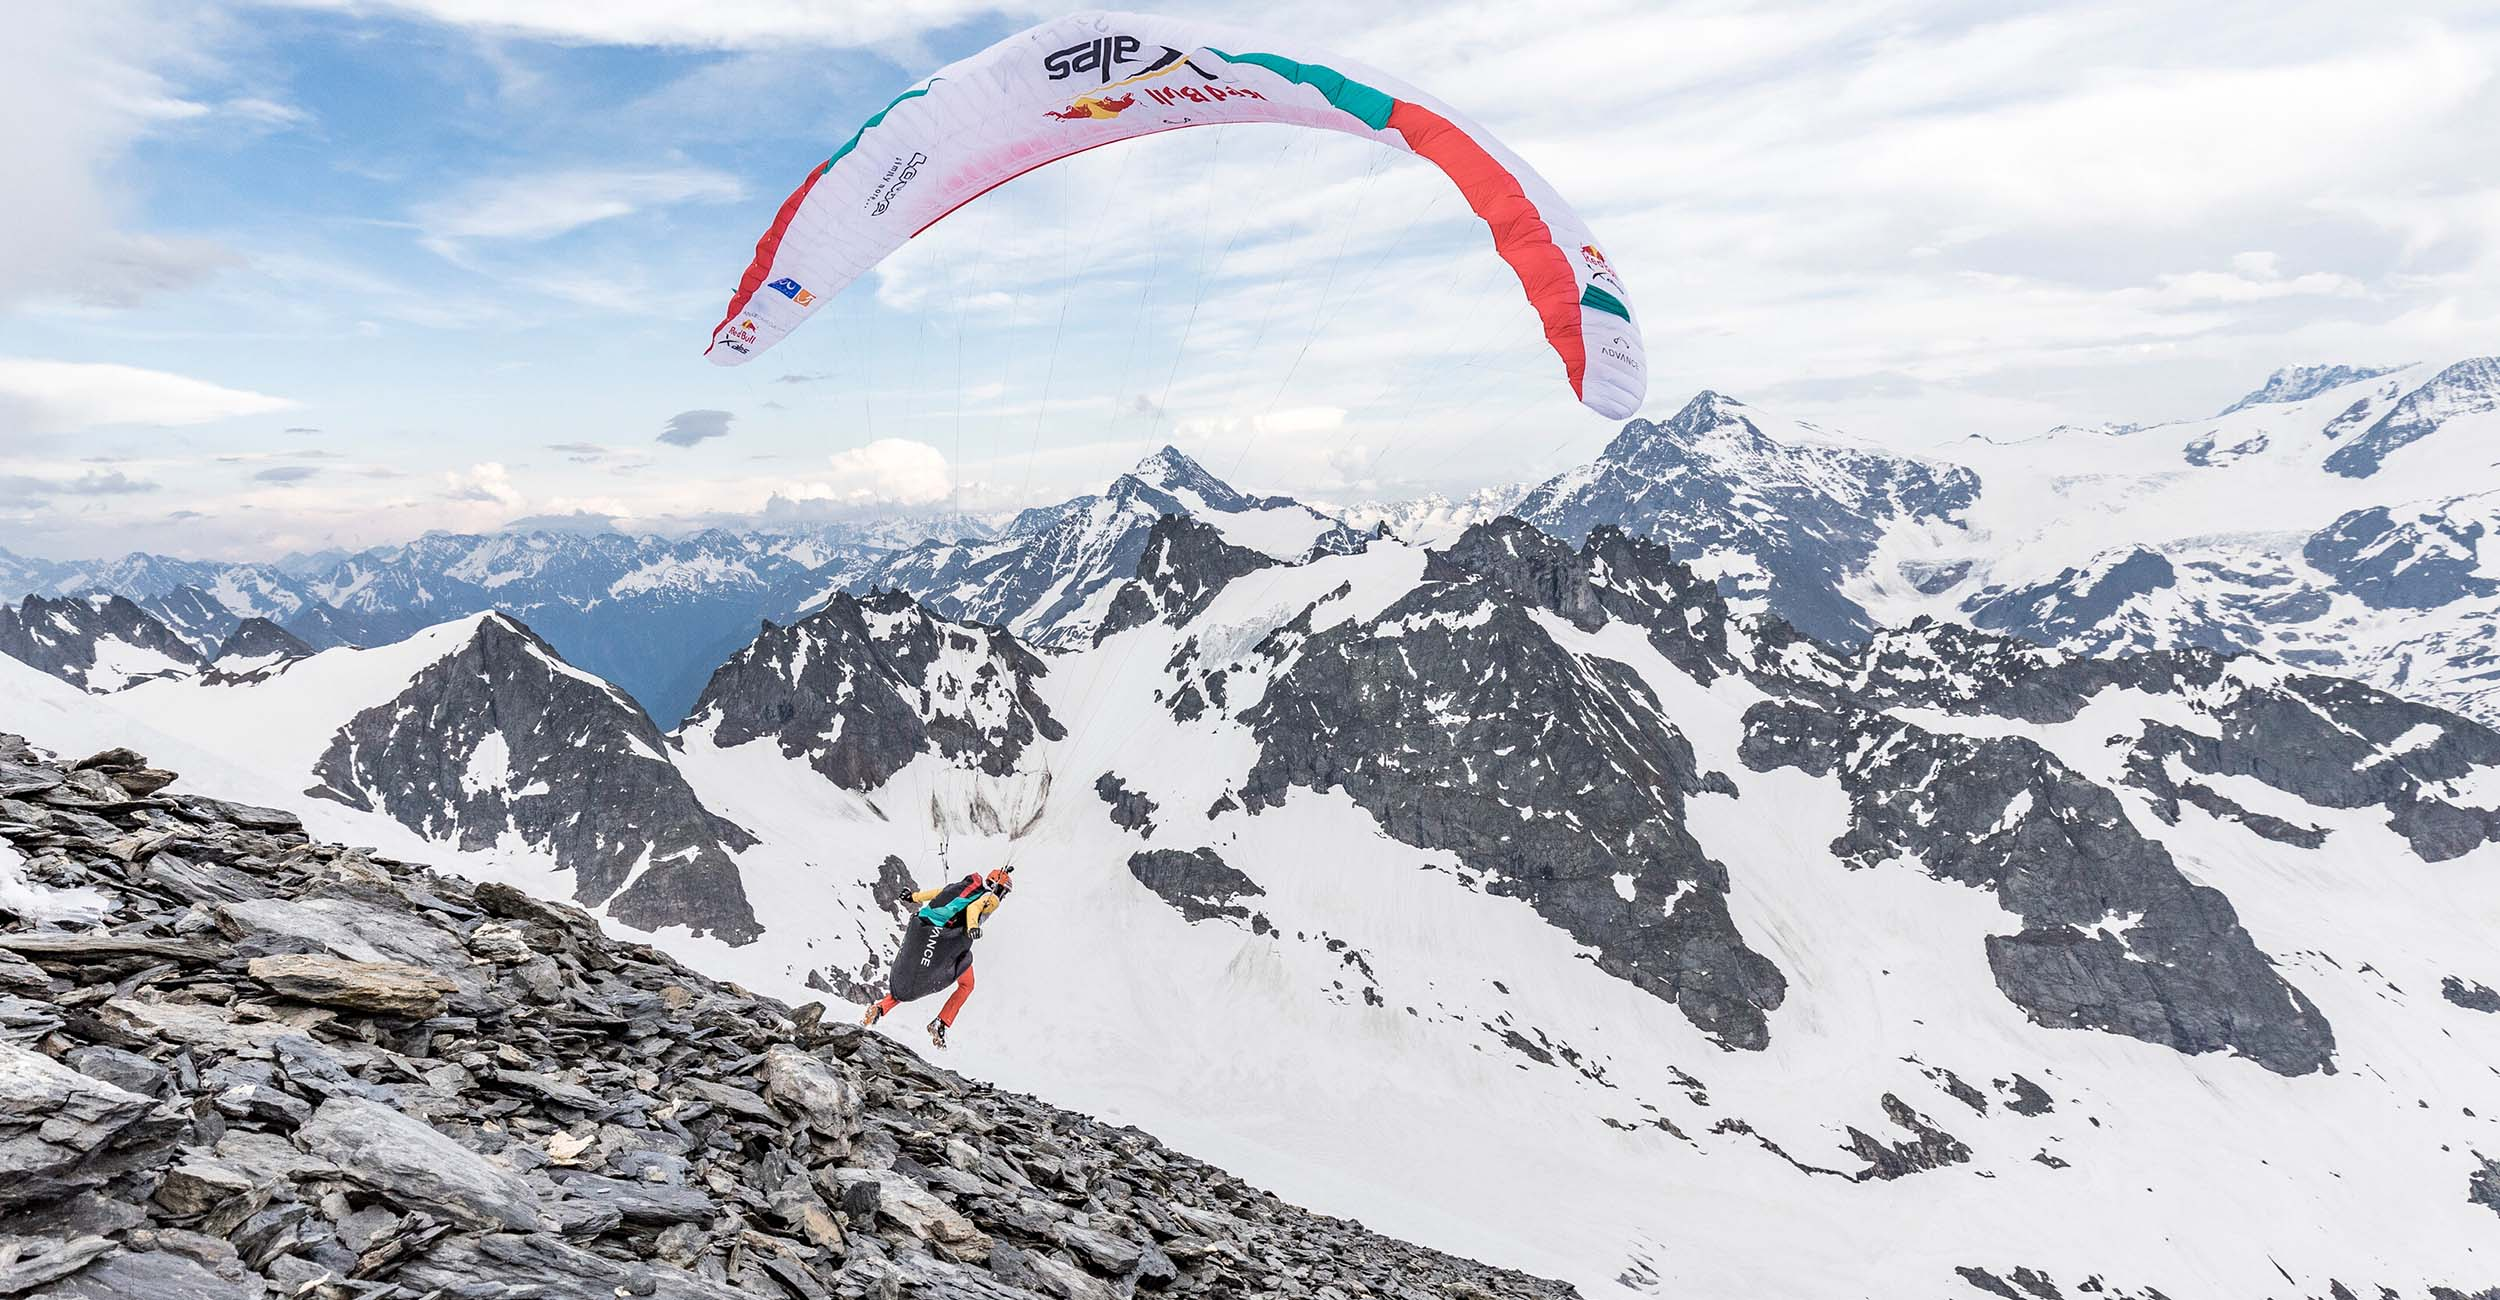 Red Bull X-Alps 2021. Photo: Harald Tauderer/Red Bull Content Pool